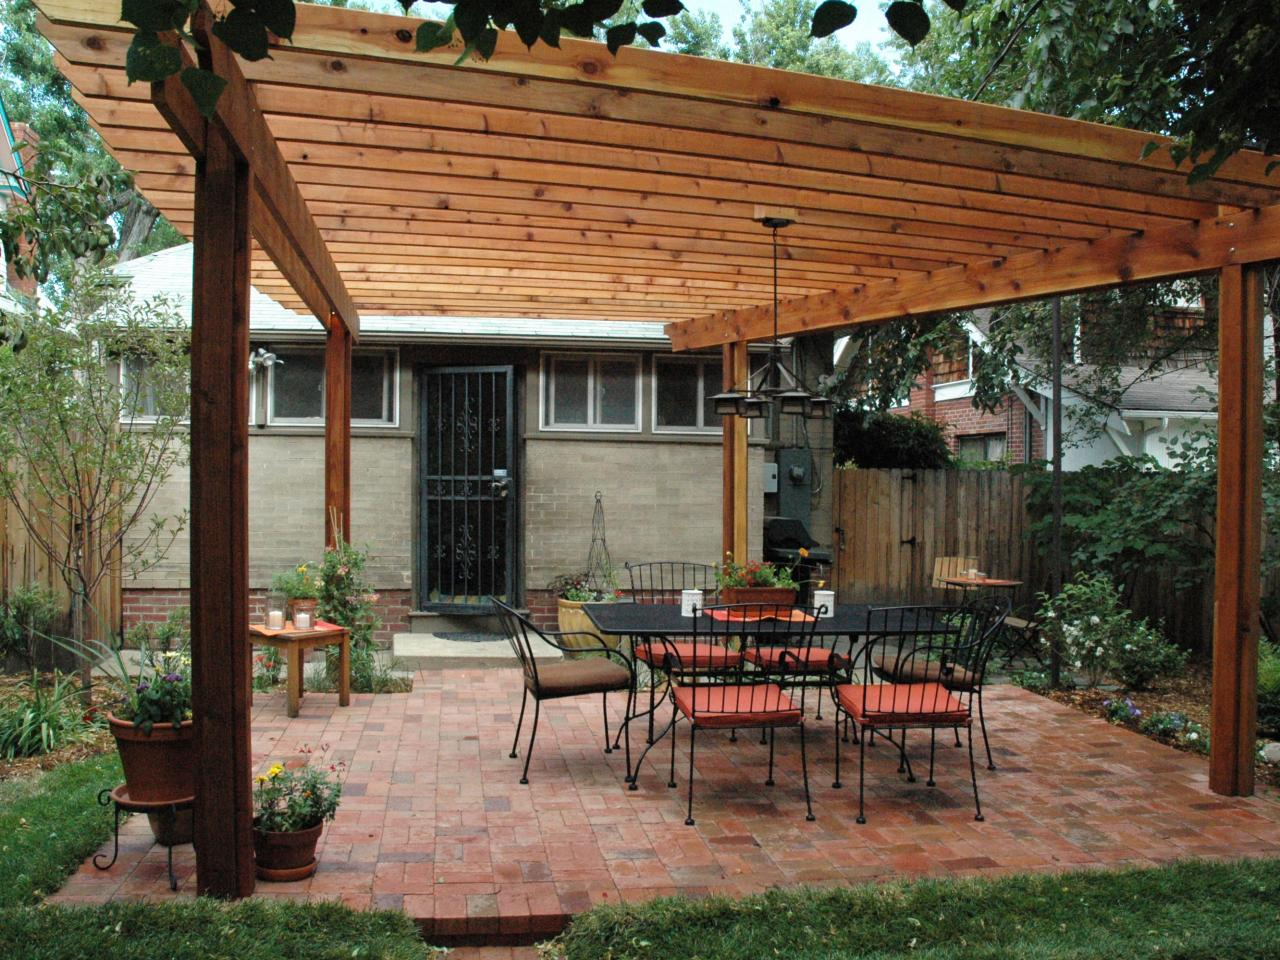 How to Build a Wood Pergola HGTV : DIY 2393091dseq1133final11jpgrendhgtvcom1280960 from www.hgtv.com size 1280 x 960 jpeg 240kB